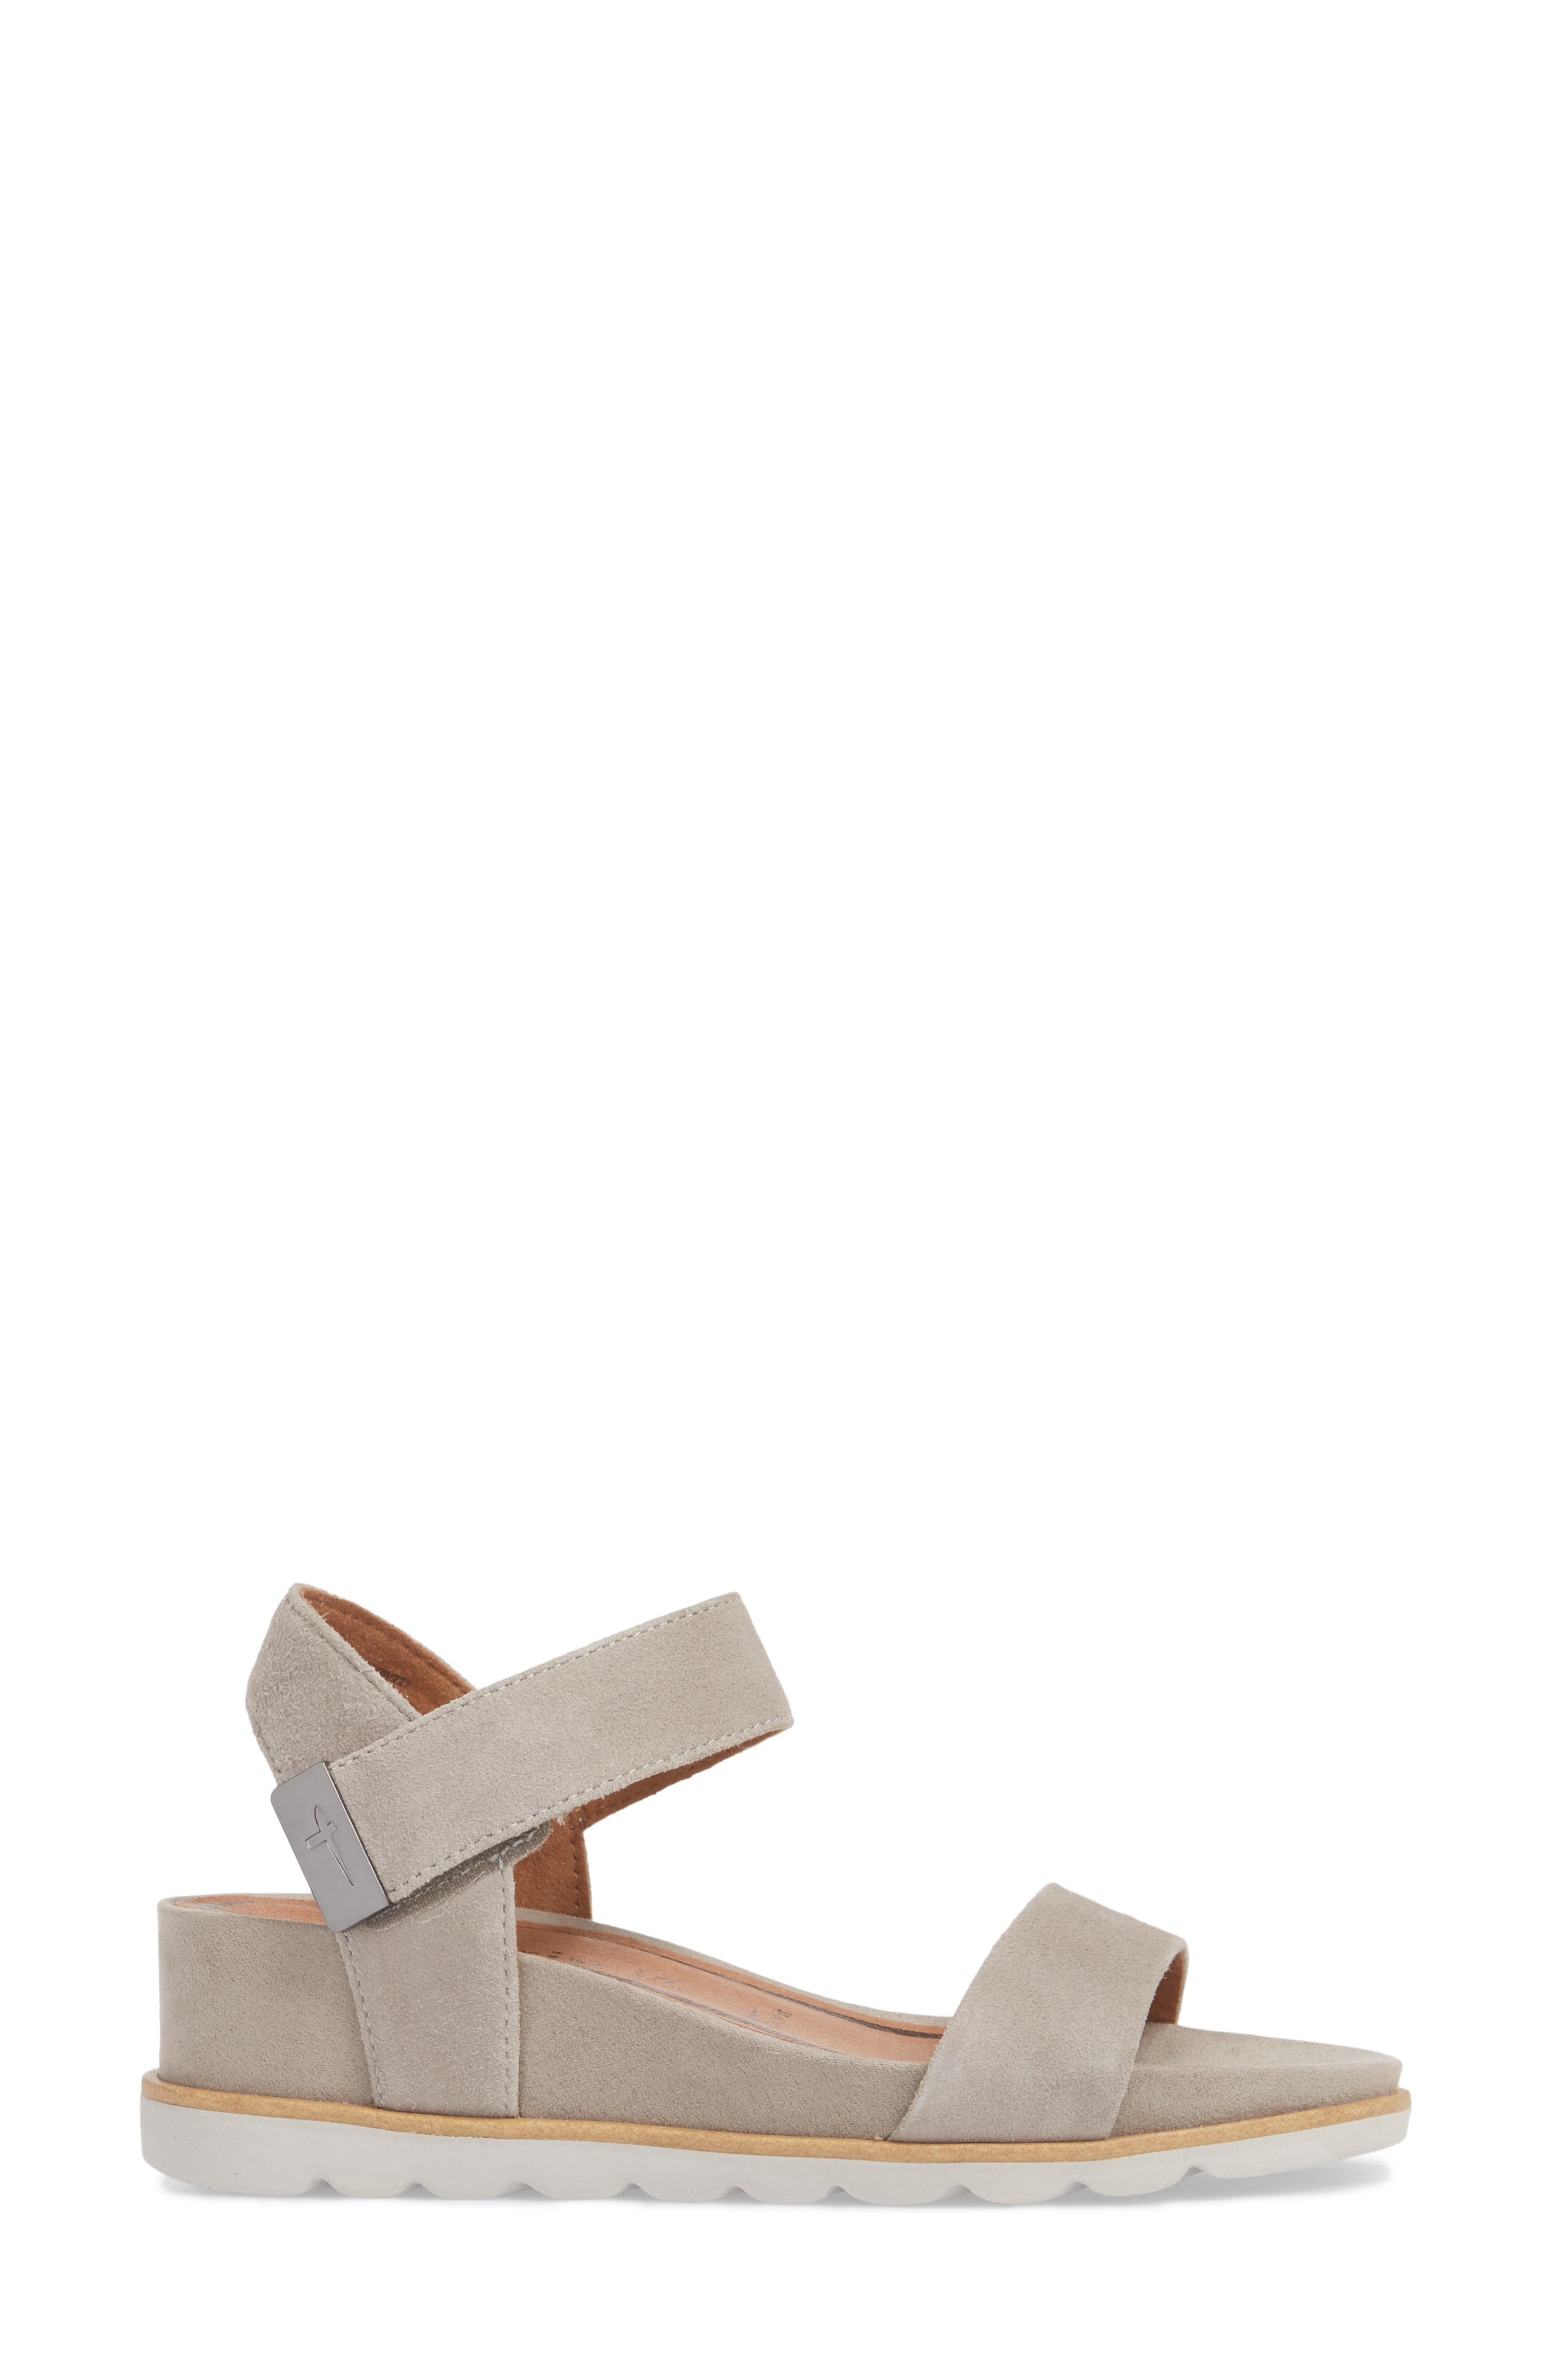 Cory Wedge Sandal,                             Alternate thumbnail 8, color,